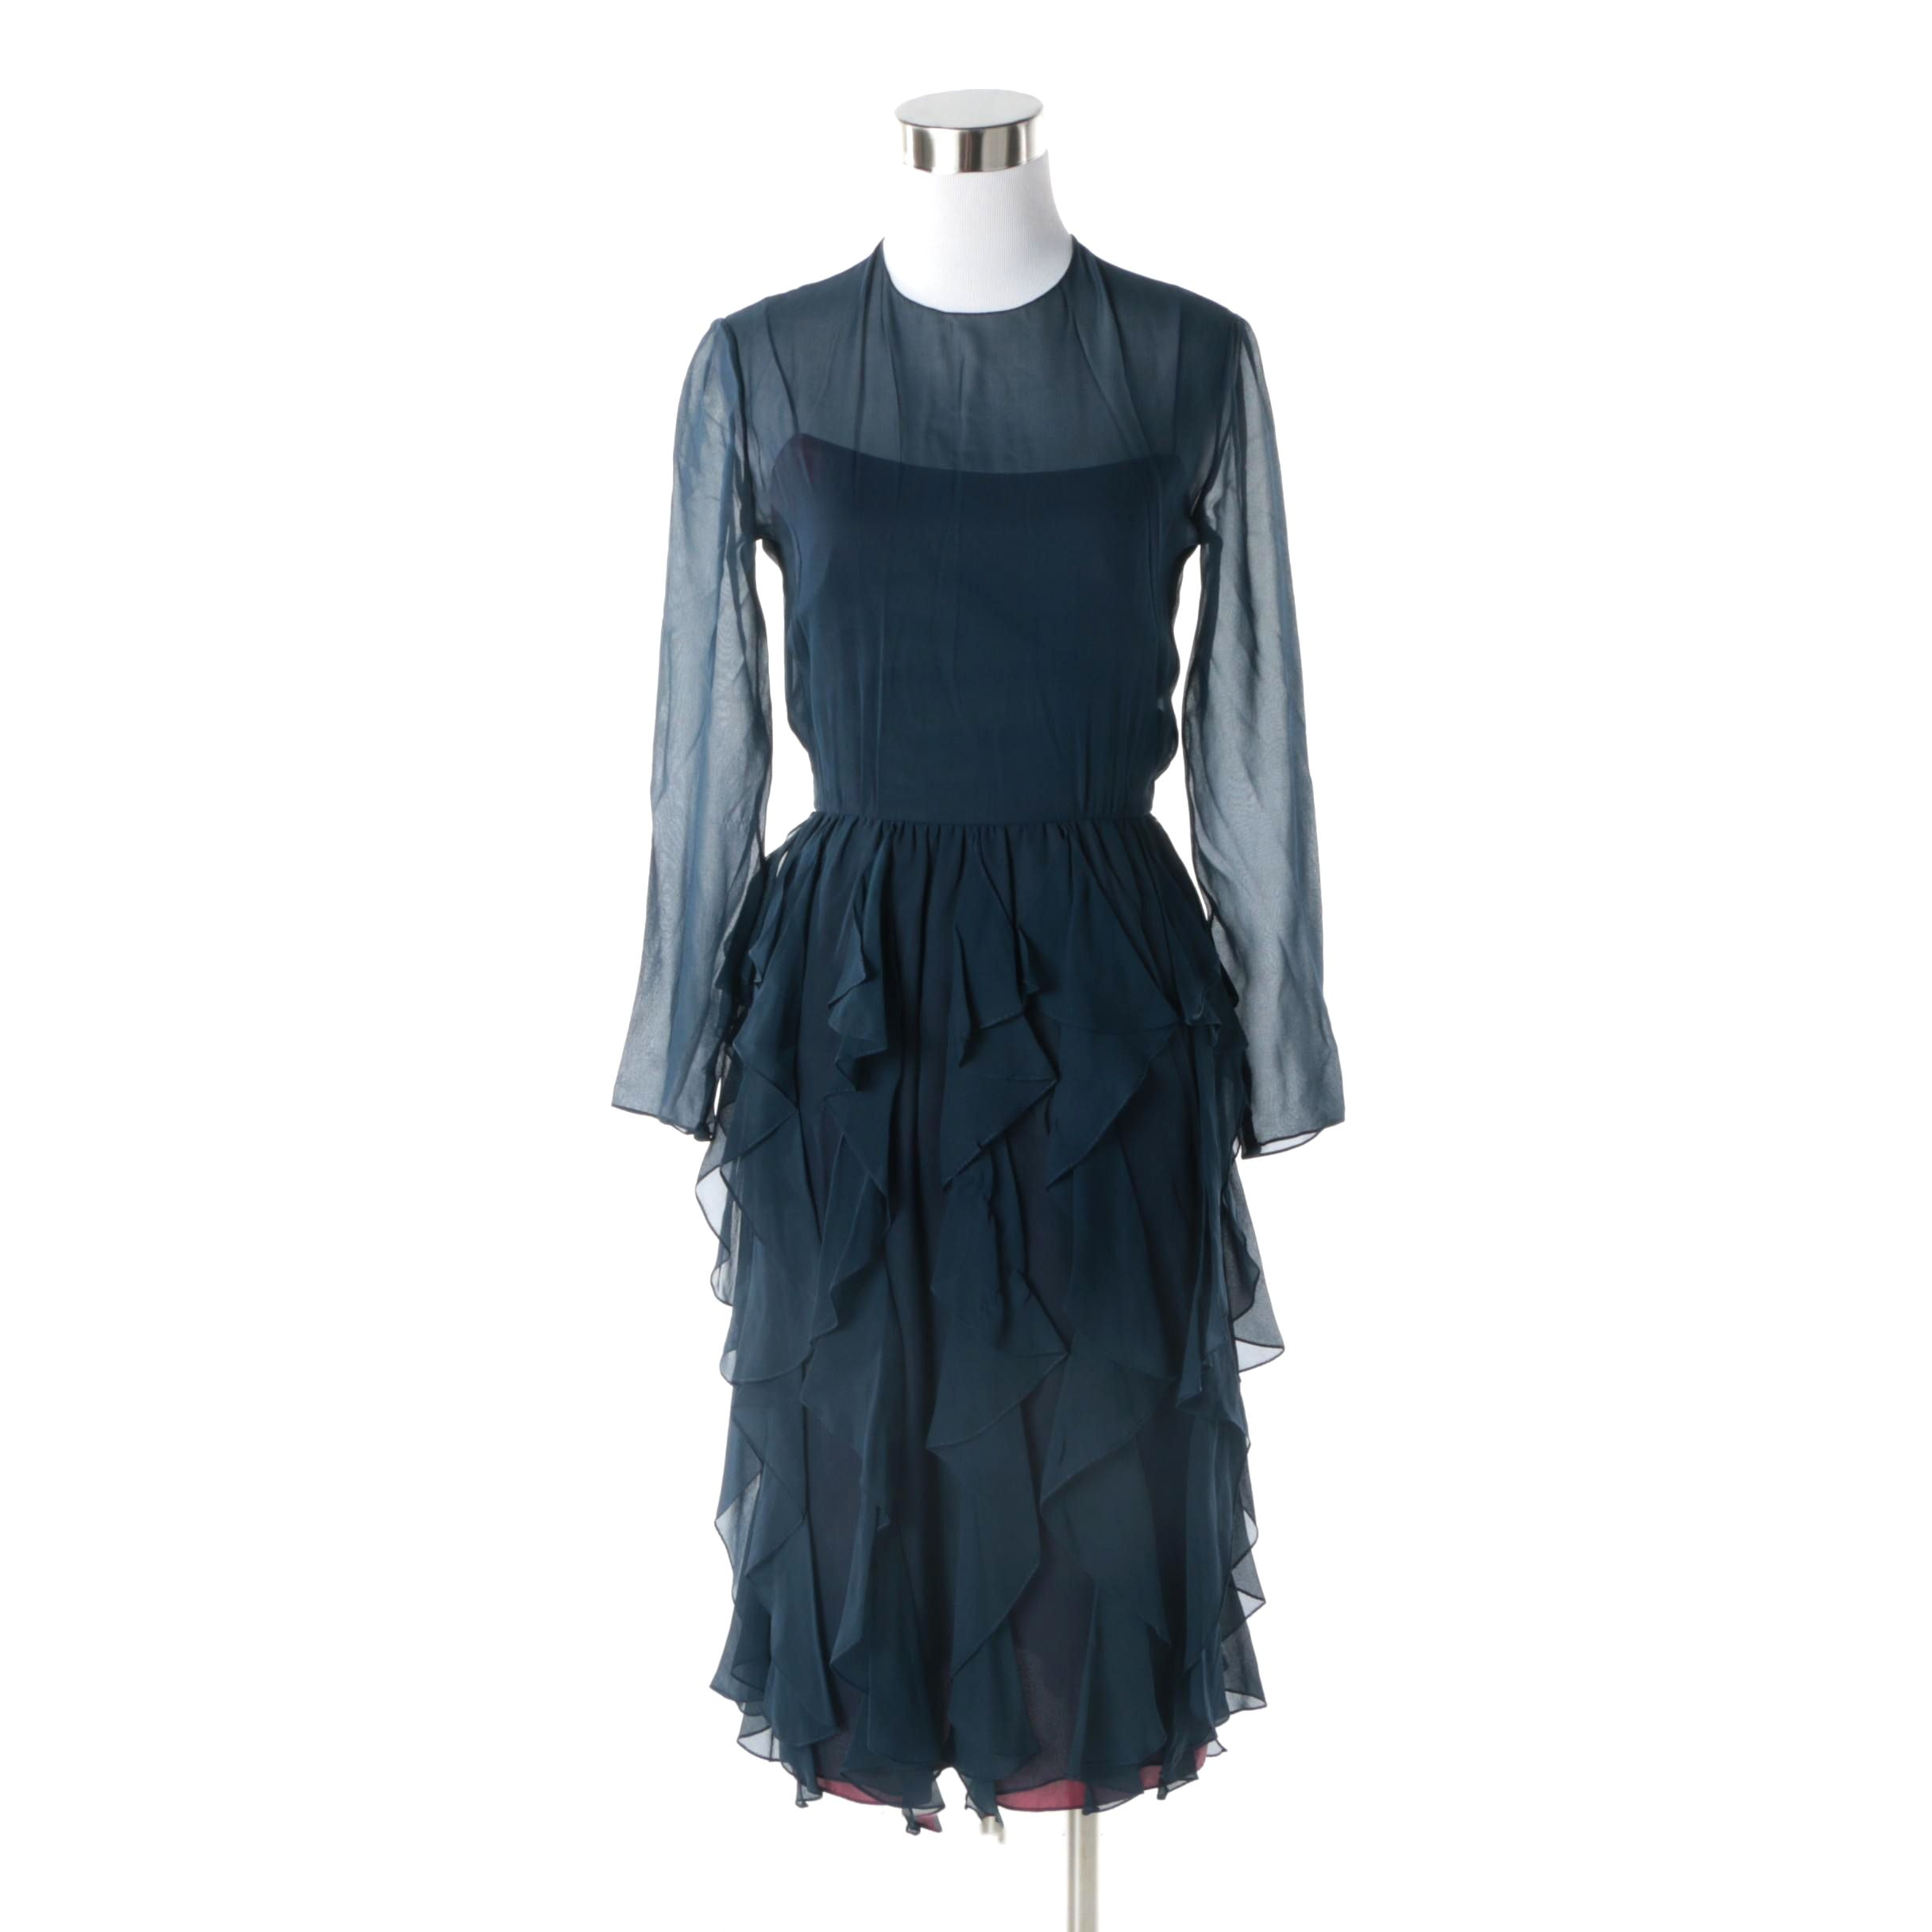 1970s Bill Blass Navy Silk Chiffon Flounce Evening Dress with Illusion Bodice